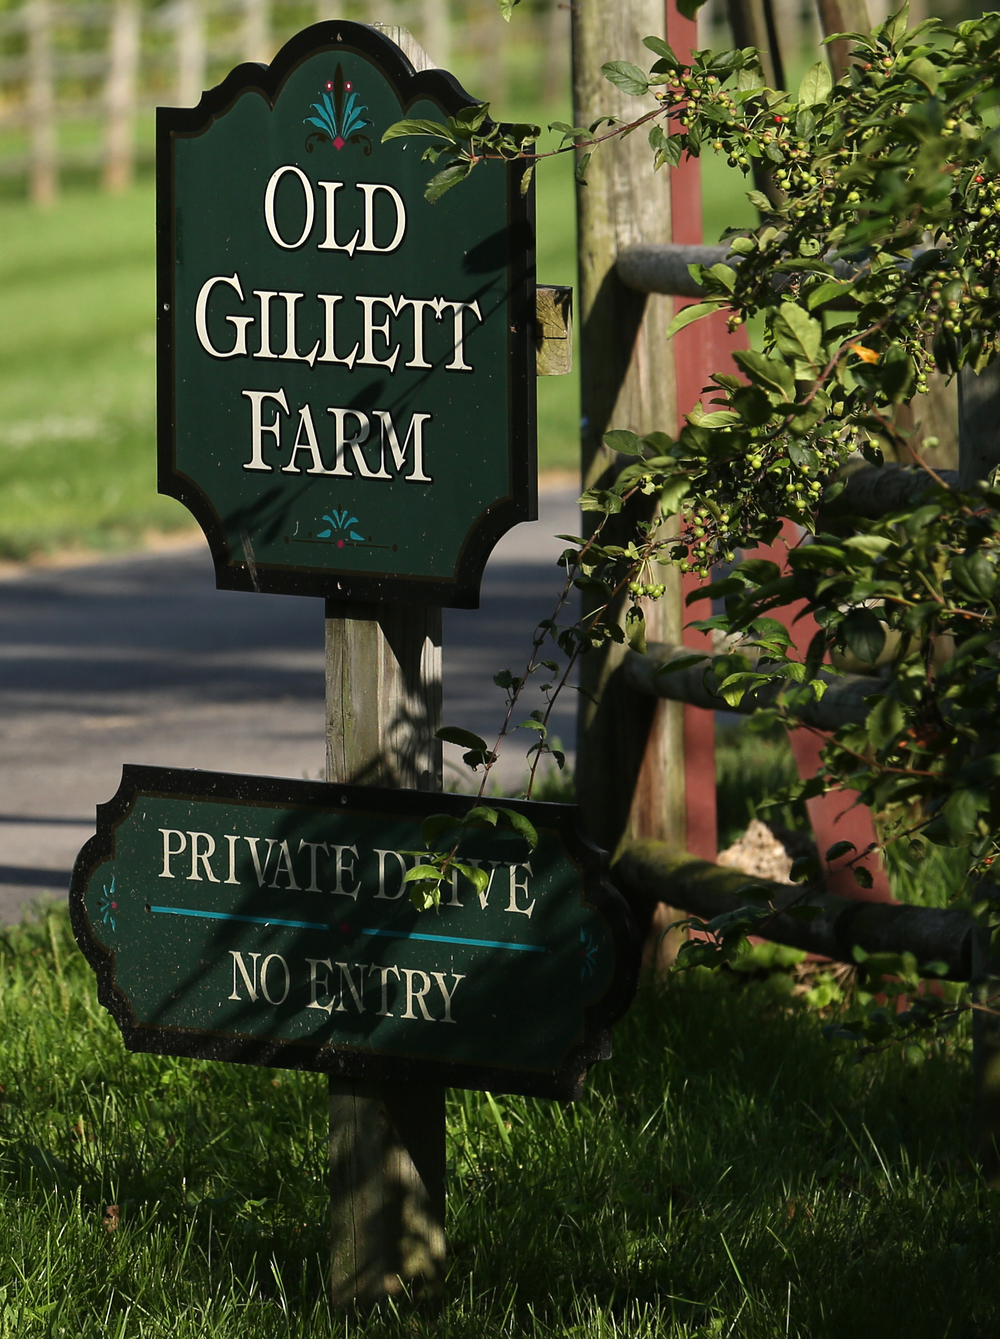 The main entrance sign to Old Gillette Farm from S. Gillette St. in Elkhart seen on Monday, July 20, 2015. David Spencer/The State Journal-Register